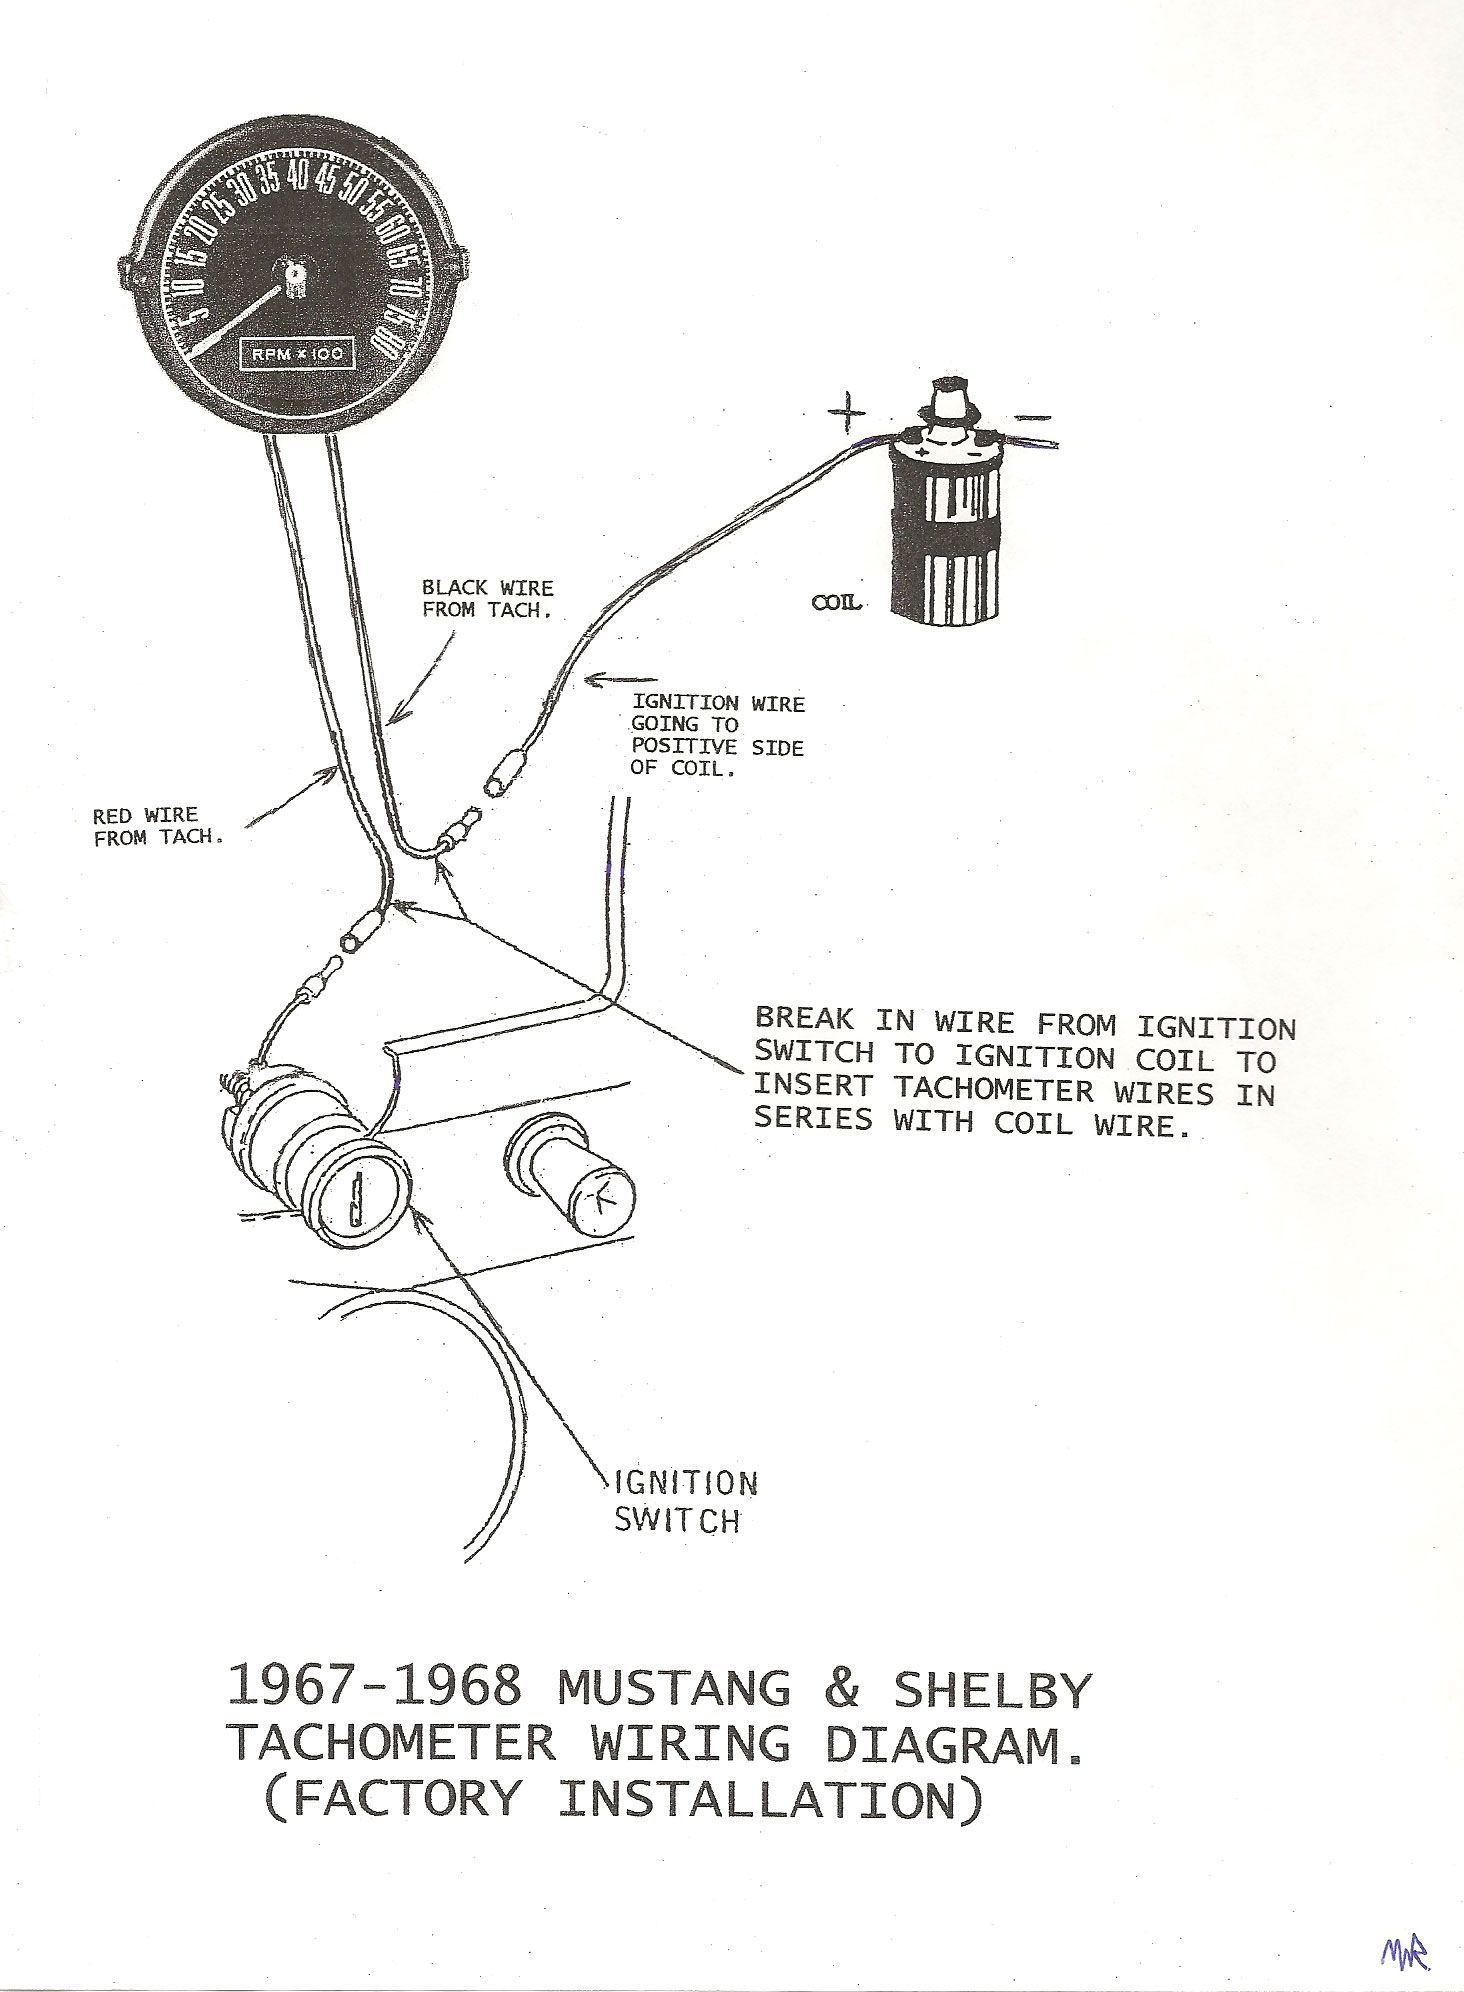 67 mustang tach wiring diagram example electrical wiring diagram u2022 rh cranejapan co wiring a tach [ 1464 x 1992 Pixel ]